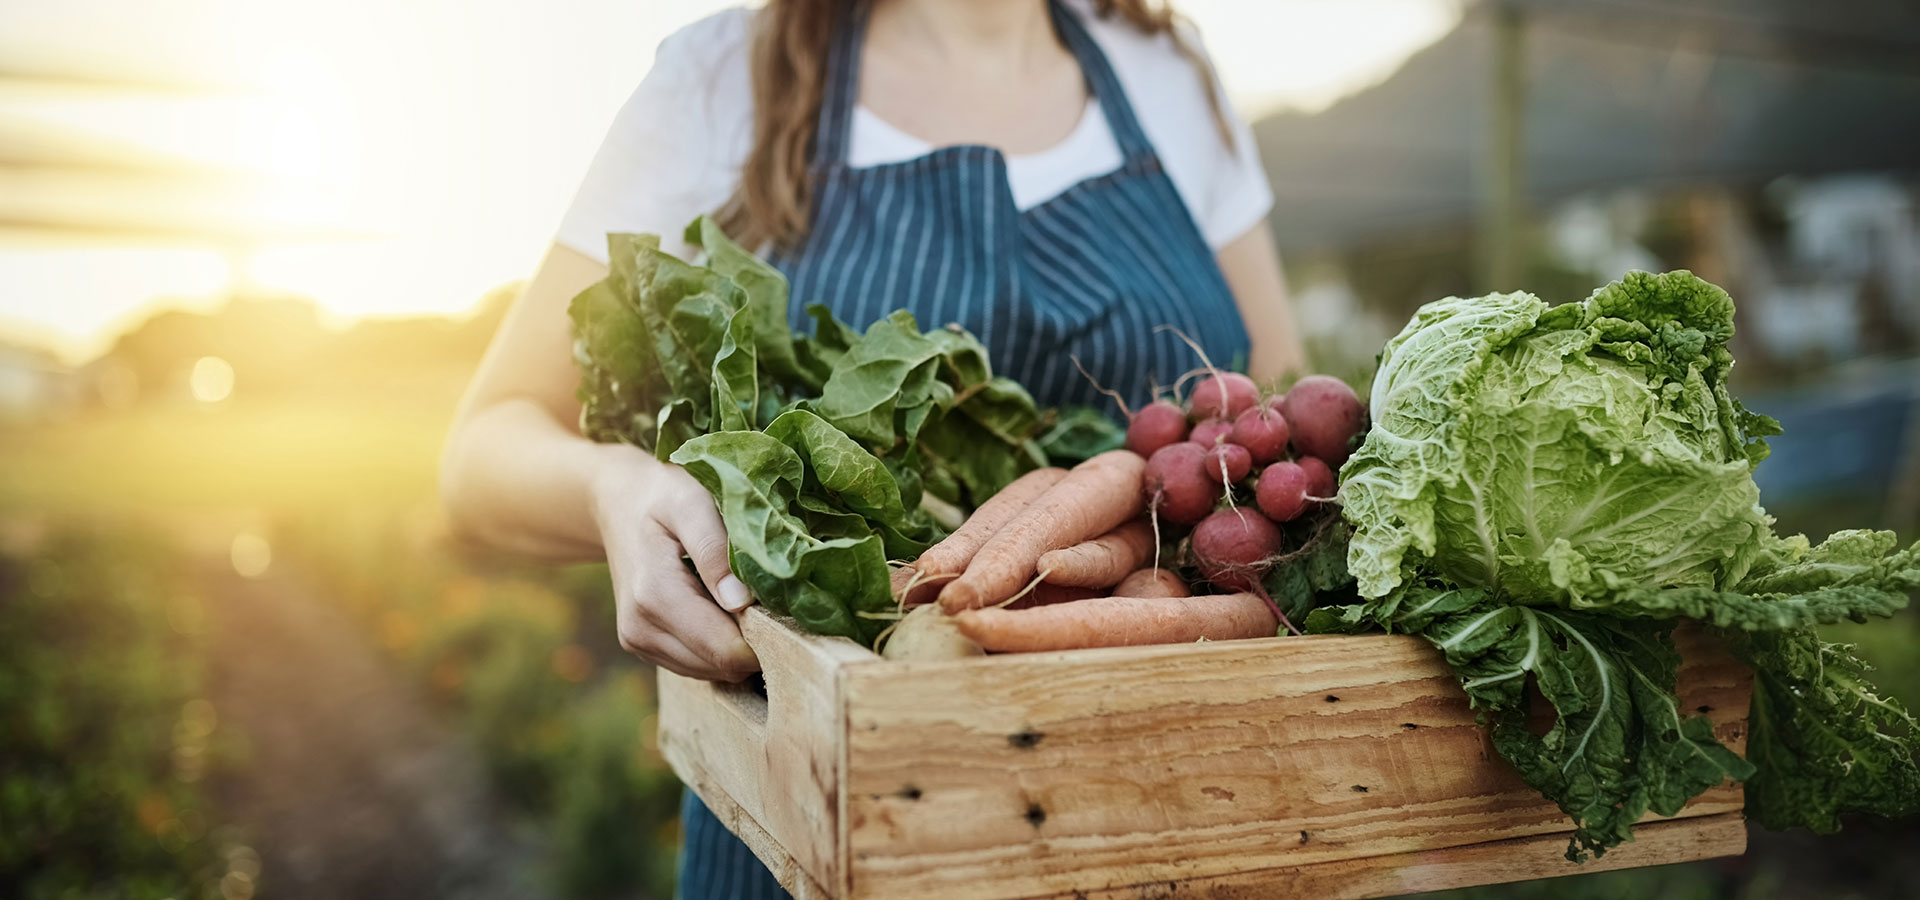 3-reasons-to-shop-local-this-gardening-season